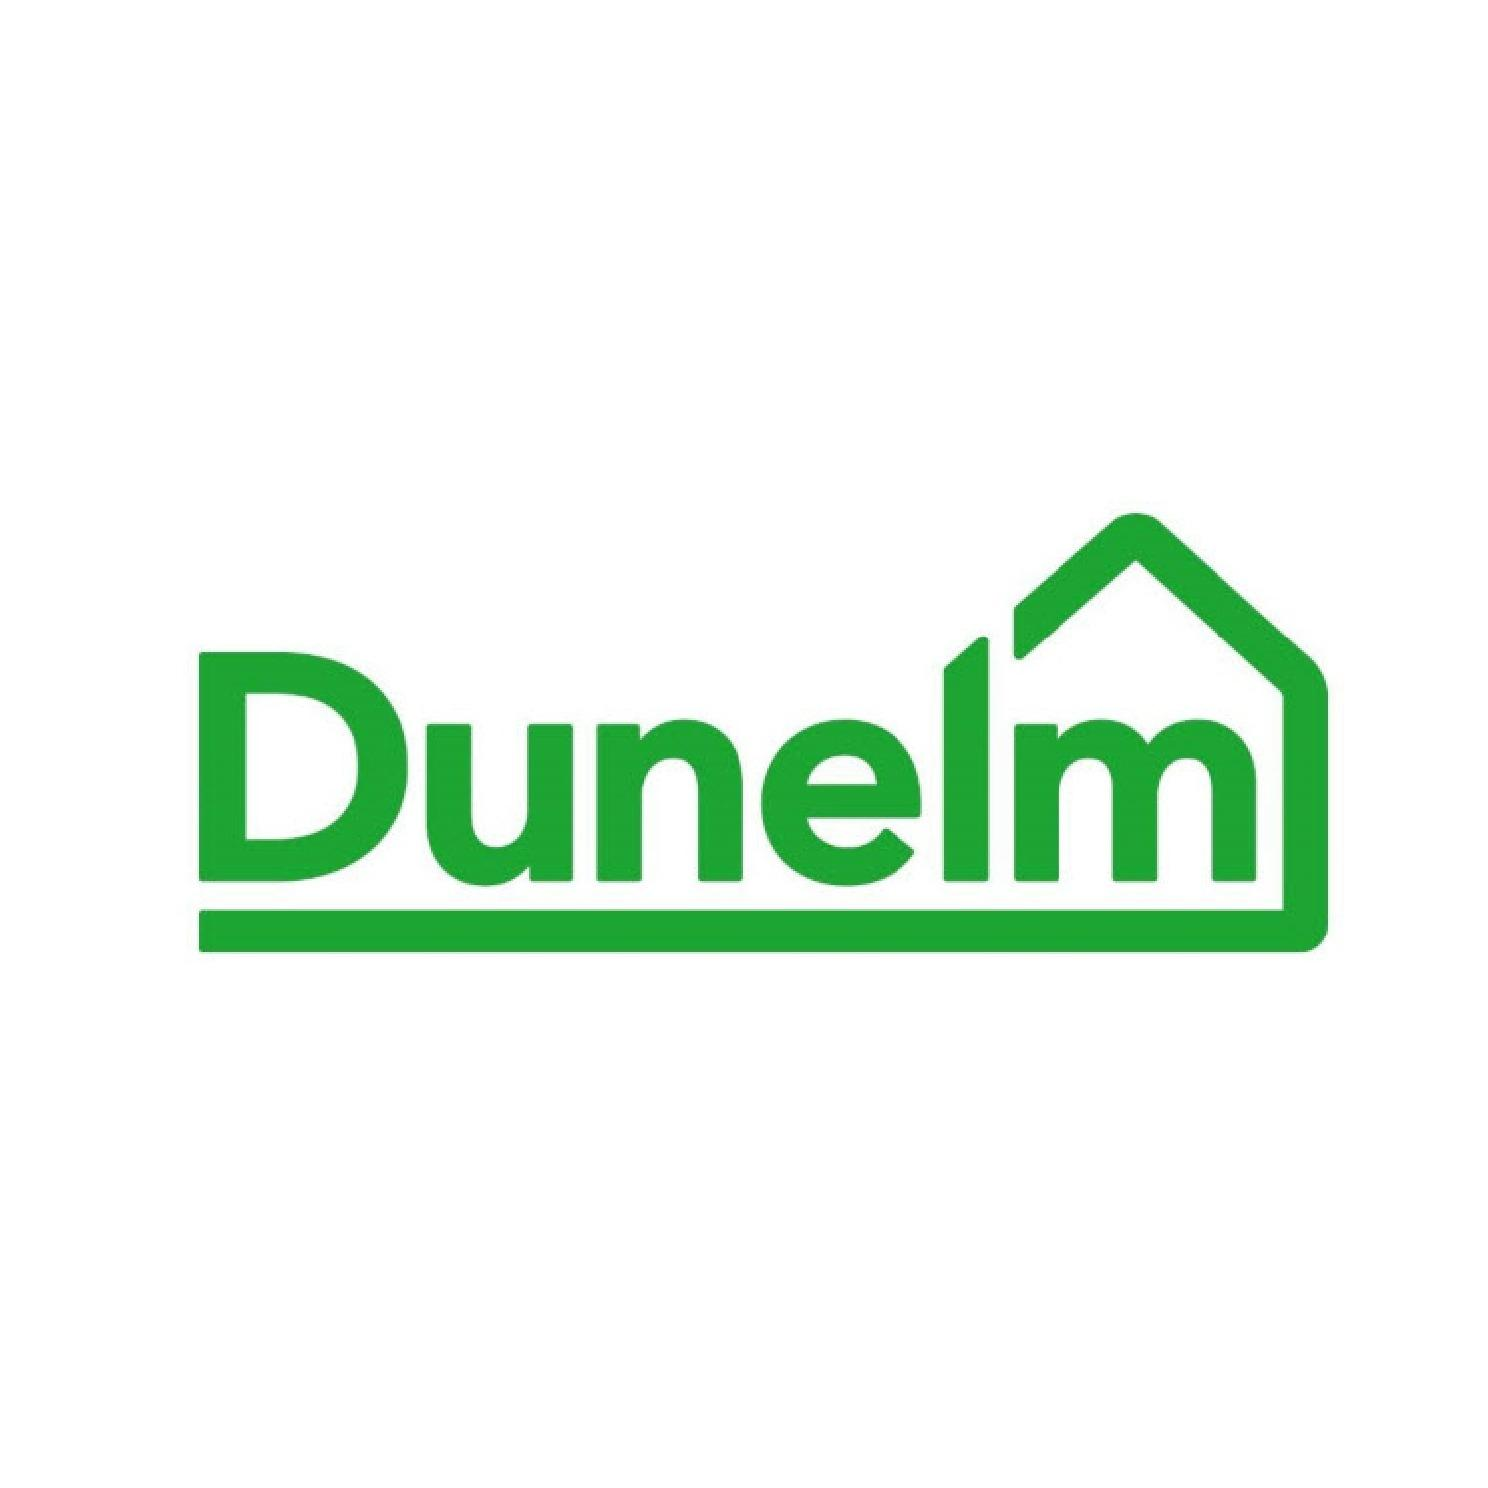 Dunelm - Wisbech, Cambridgeshire PE14 0SD - 01945 588088 | ShowMeLocal.com